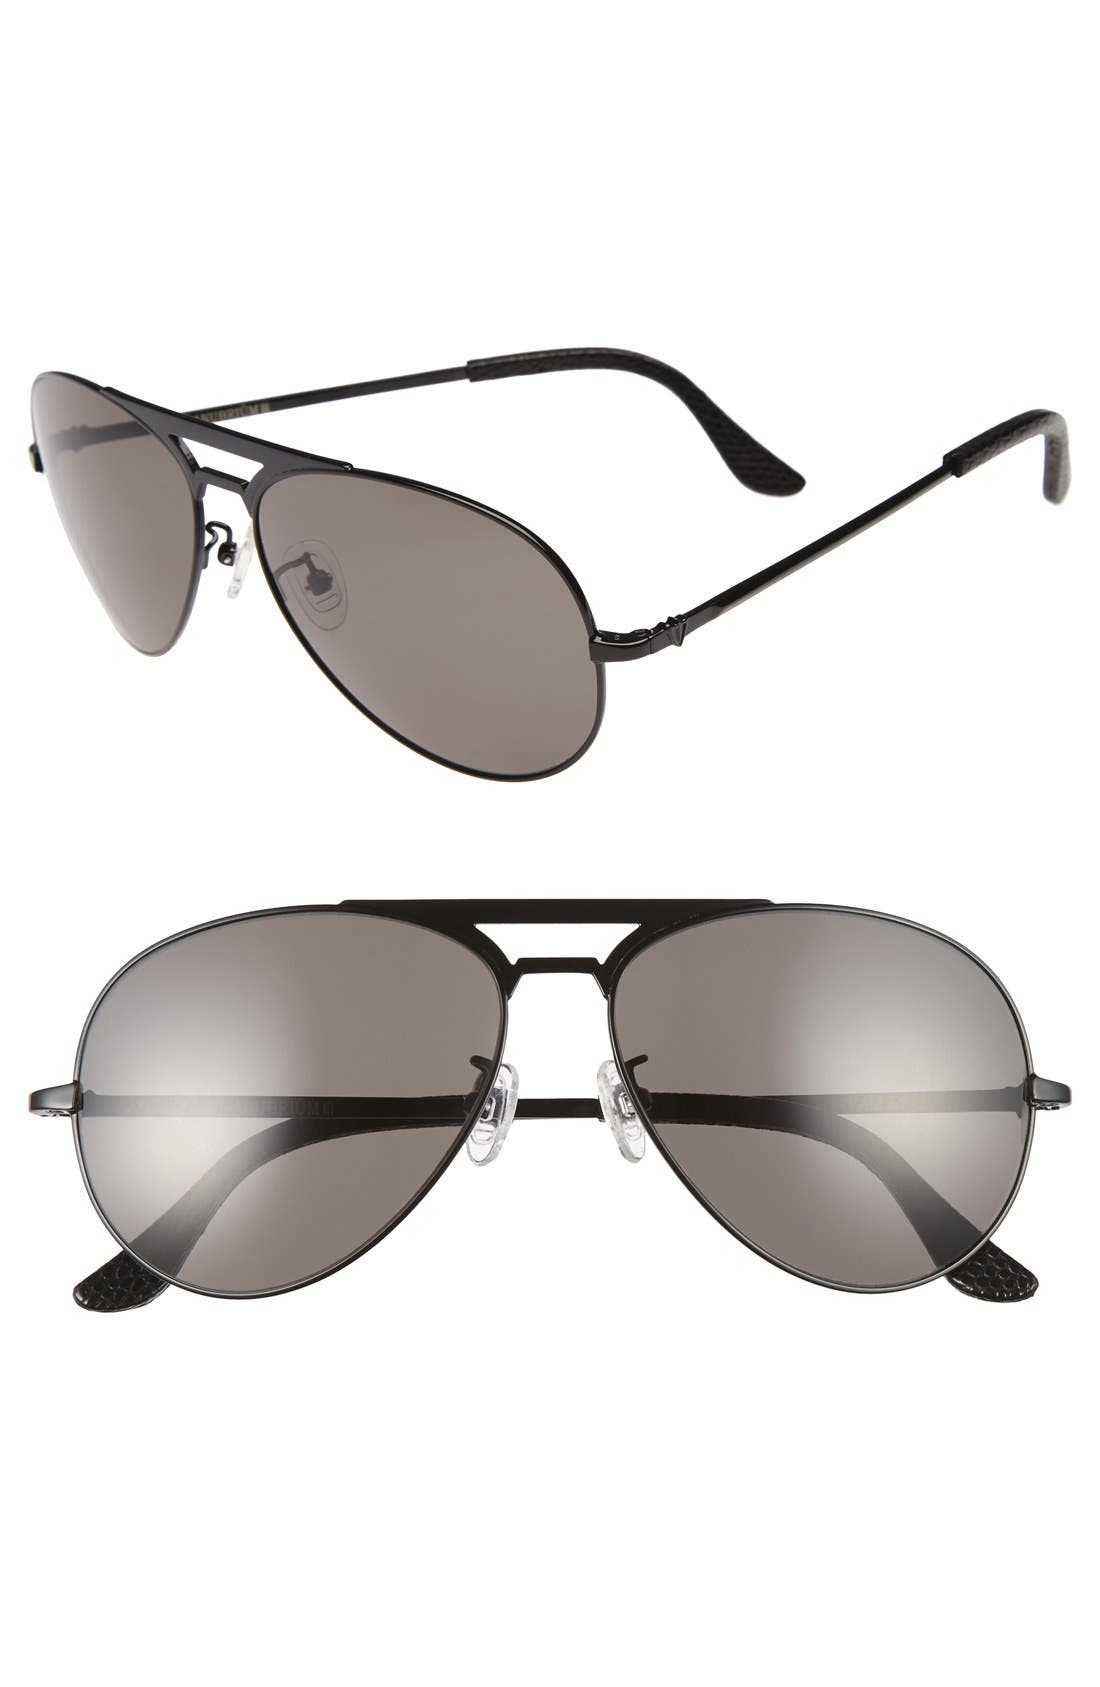 VALLEY 51mm Manubrium Aviator Sunglasses